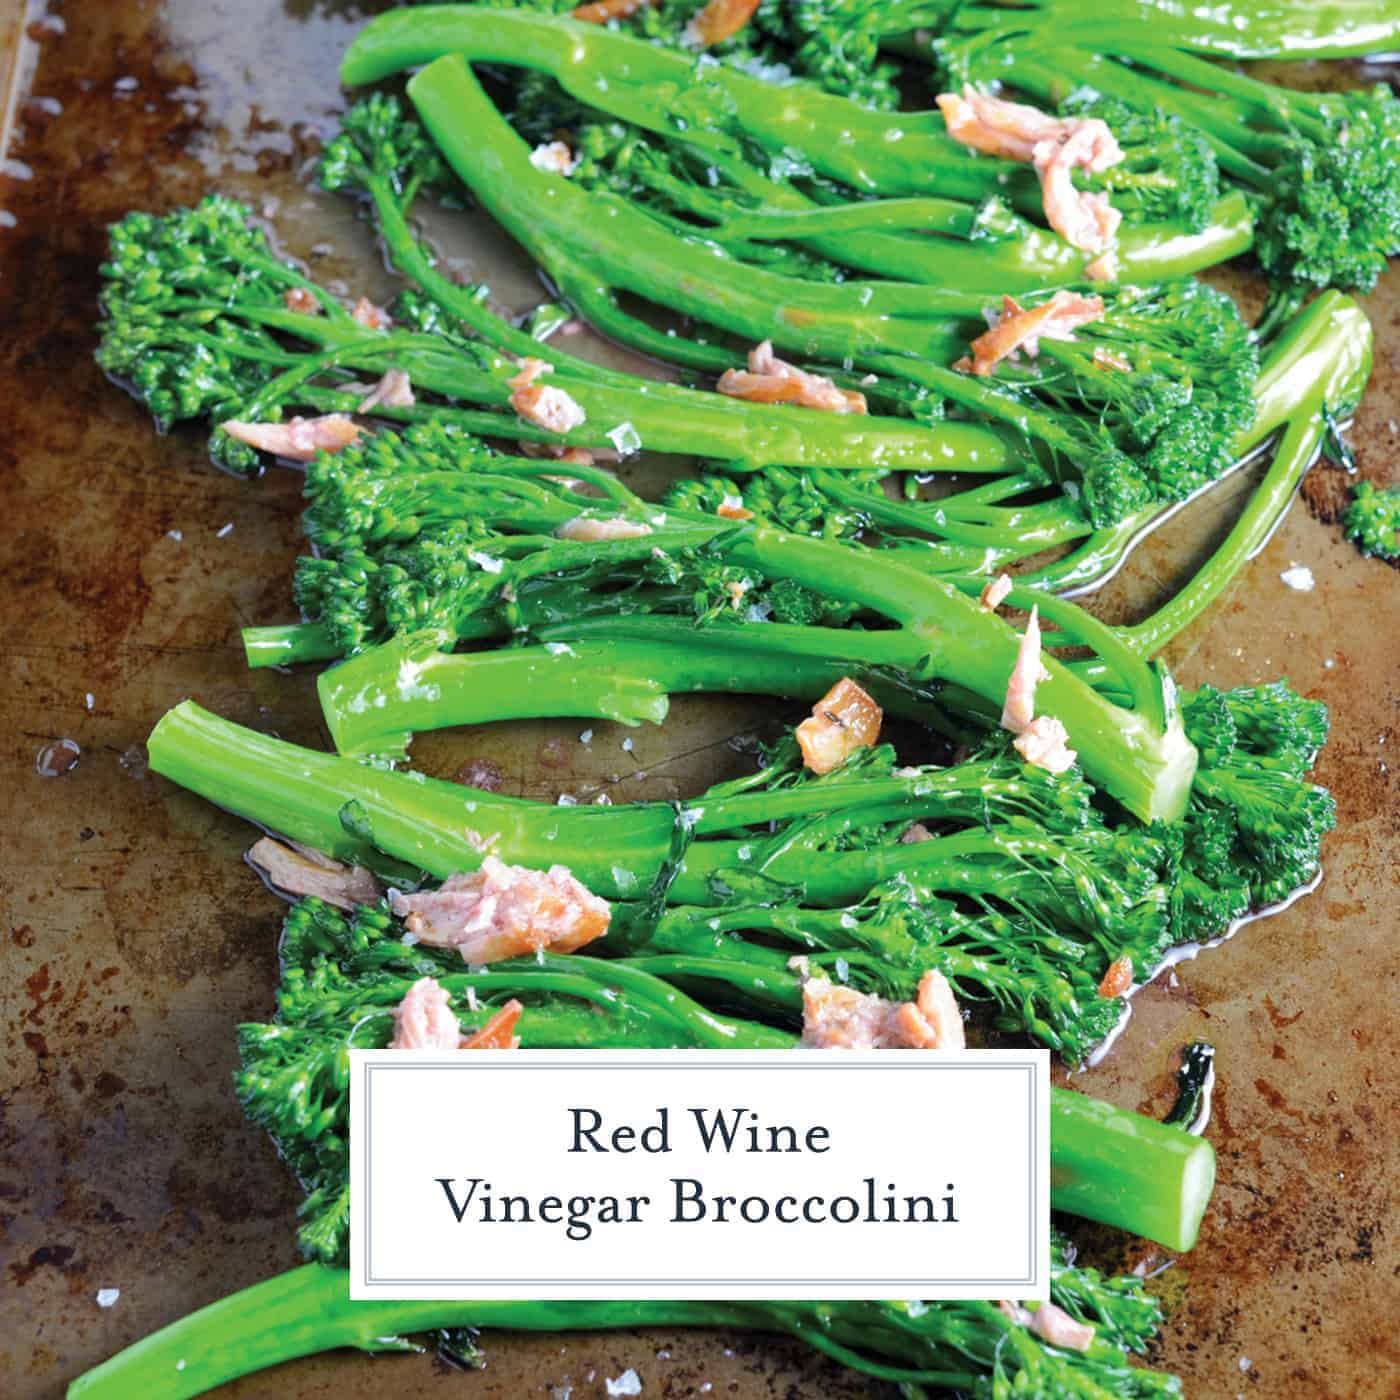 Red Wine Vinegar Broccolini combines fresh flavors of tender broccolini with garlic and snappy red wine vinegar for a simple, healthy and tasty side dish recipe.#broccolini #sidedisherecipes www.savoryexperiments.com